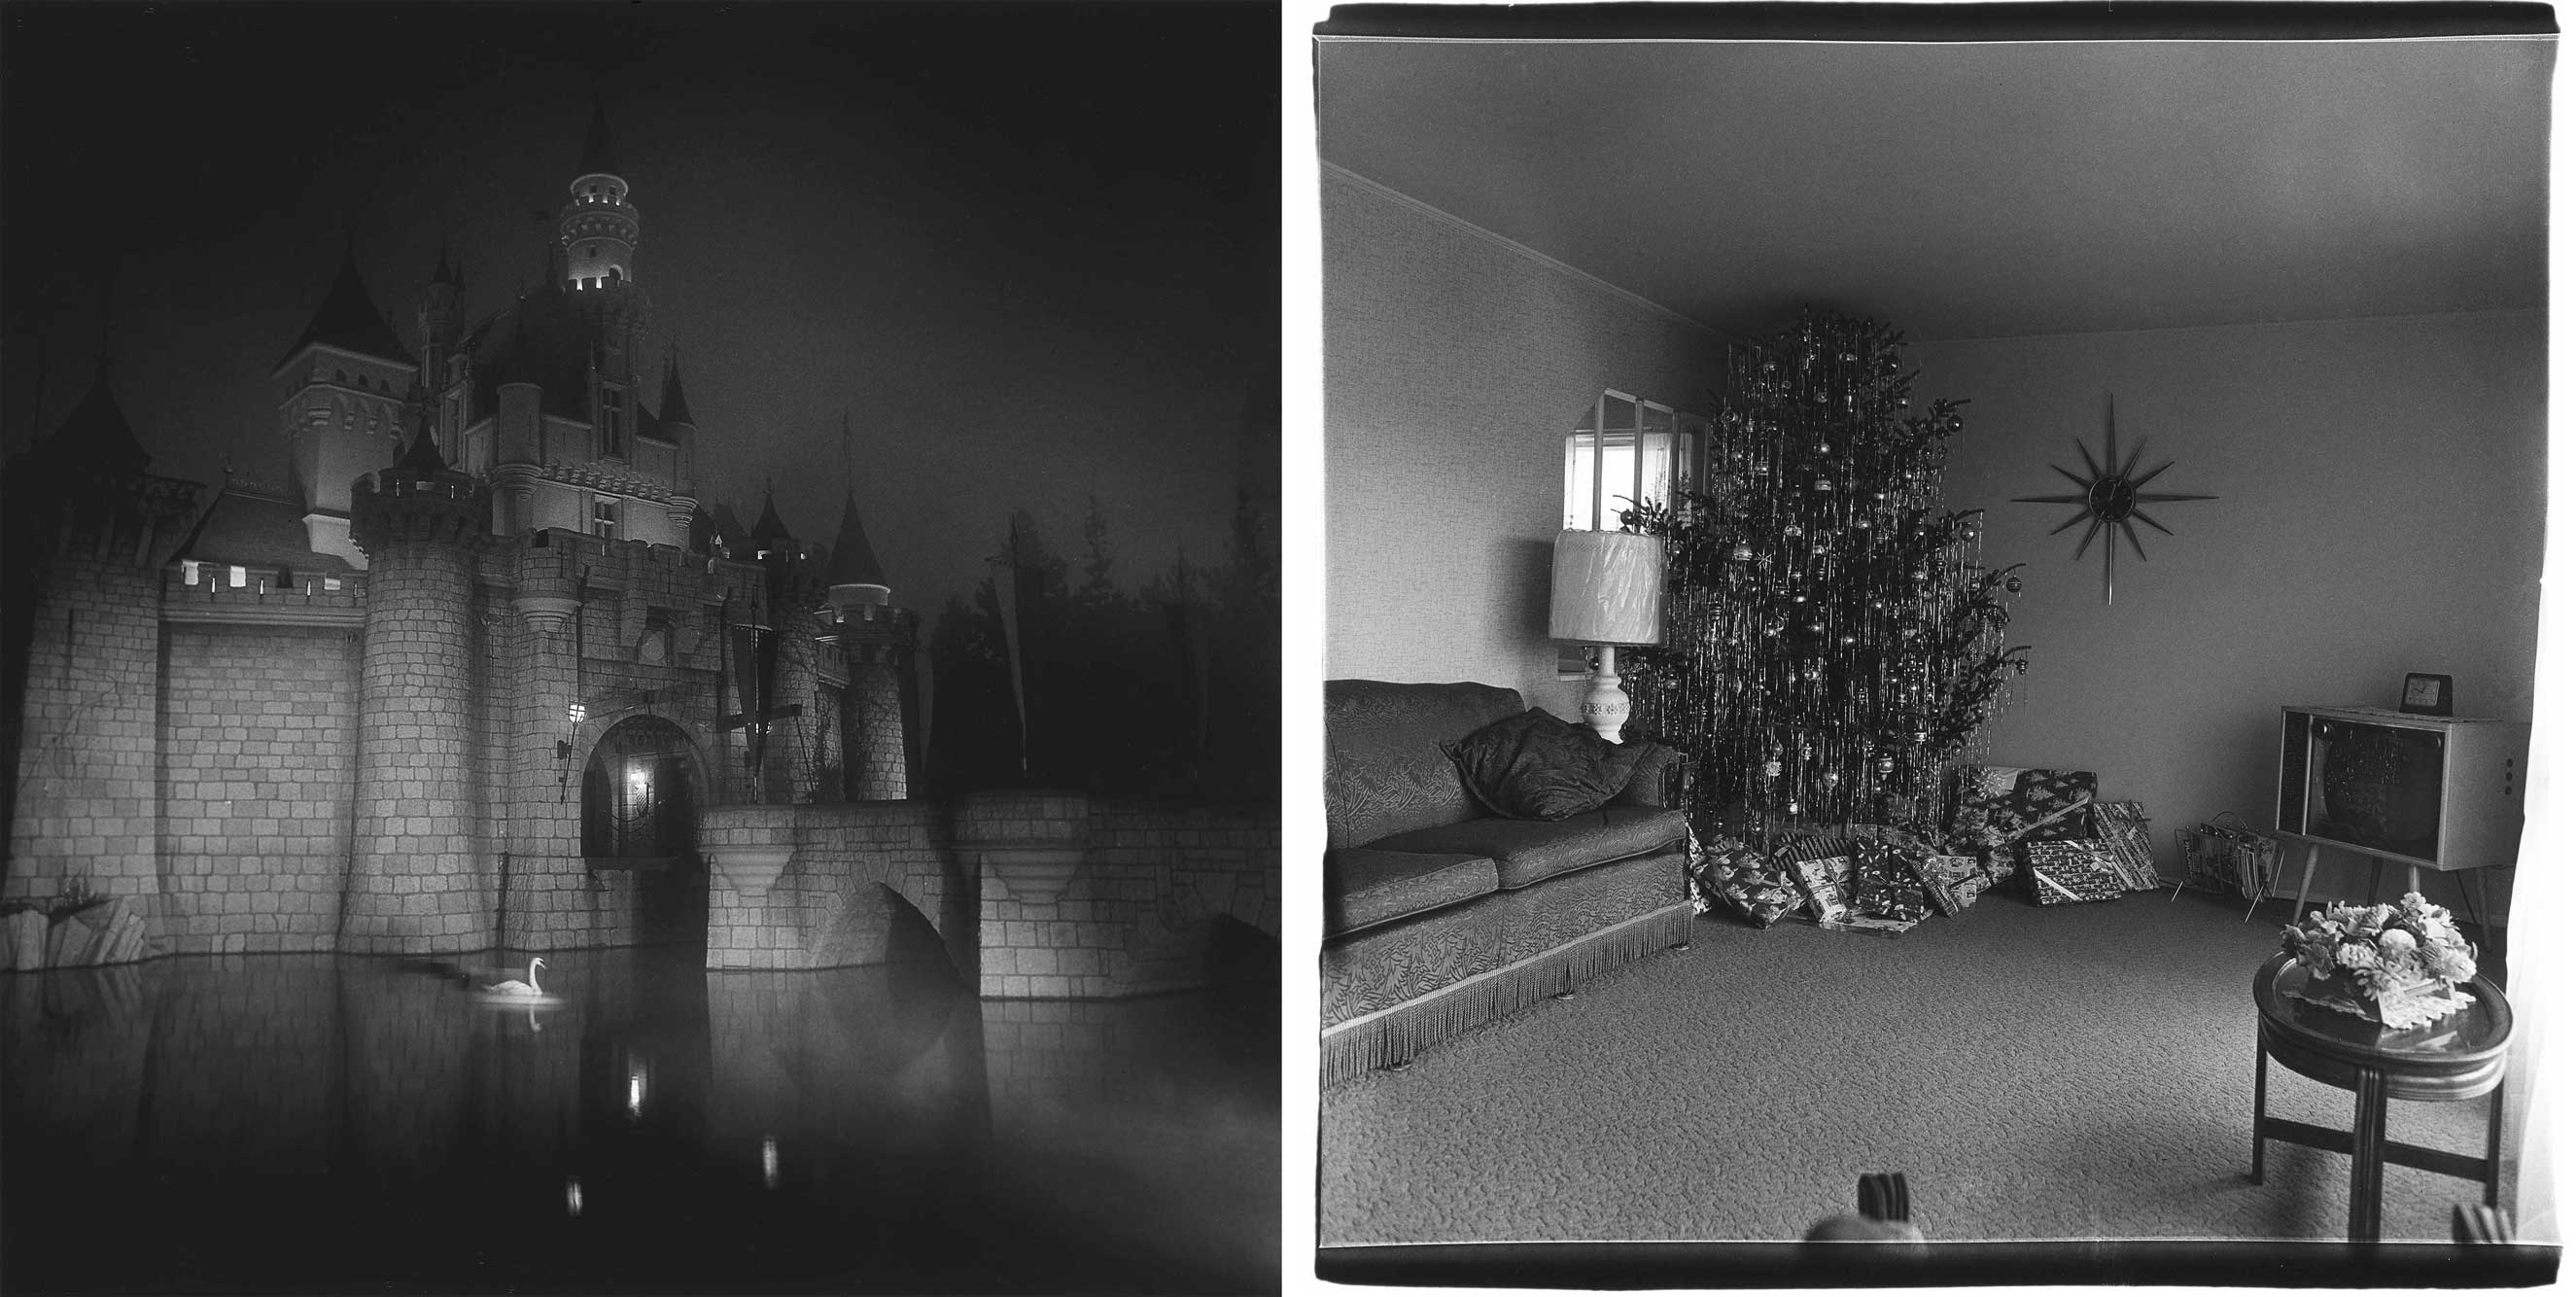 A castle in Disneyland, Cal. 1962 and Xmas tree in living room in Levittown, L.I. 1962                               Gus Powell: These are two Arbus images that are in my juke box, the A and the B side that have stayed with me. These are both fairly well-known images, but are atypical in that they are both absent of a classic Arbus protagonist or freak. I was surprised to learn that both of these were from the early years, and delighted to see more pictures that were absent of people, pictures that let you see Arbus see, rather than see who Arbus saw. The wonderful curation and installation of this exhibition lets you wander amidst the pictures as Arbus might have wandered the city. You encounter an image of an amusement park game. It's a machine with a grip that when fed a coin and squeezed, will let you know your temperament. No one is standing at it, but the light for tender is lit. Such a simple picture, but this is what we do, we go out looking at the world to see what can be seen, but it's always conditioned, illuminated by the feelings that we bring. Every one of her pictures is illuminated with some tenderness.